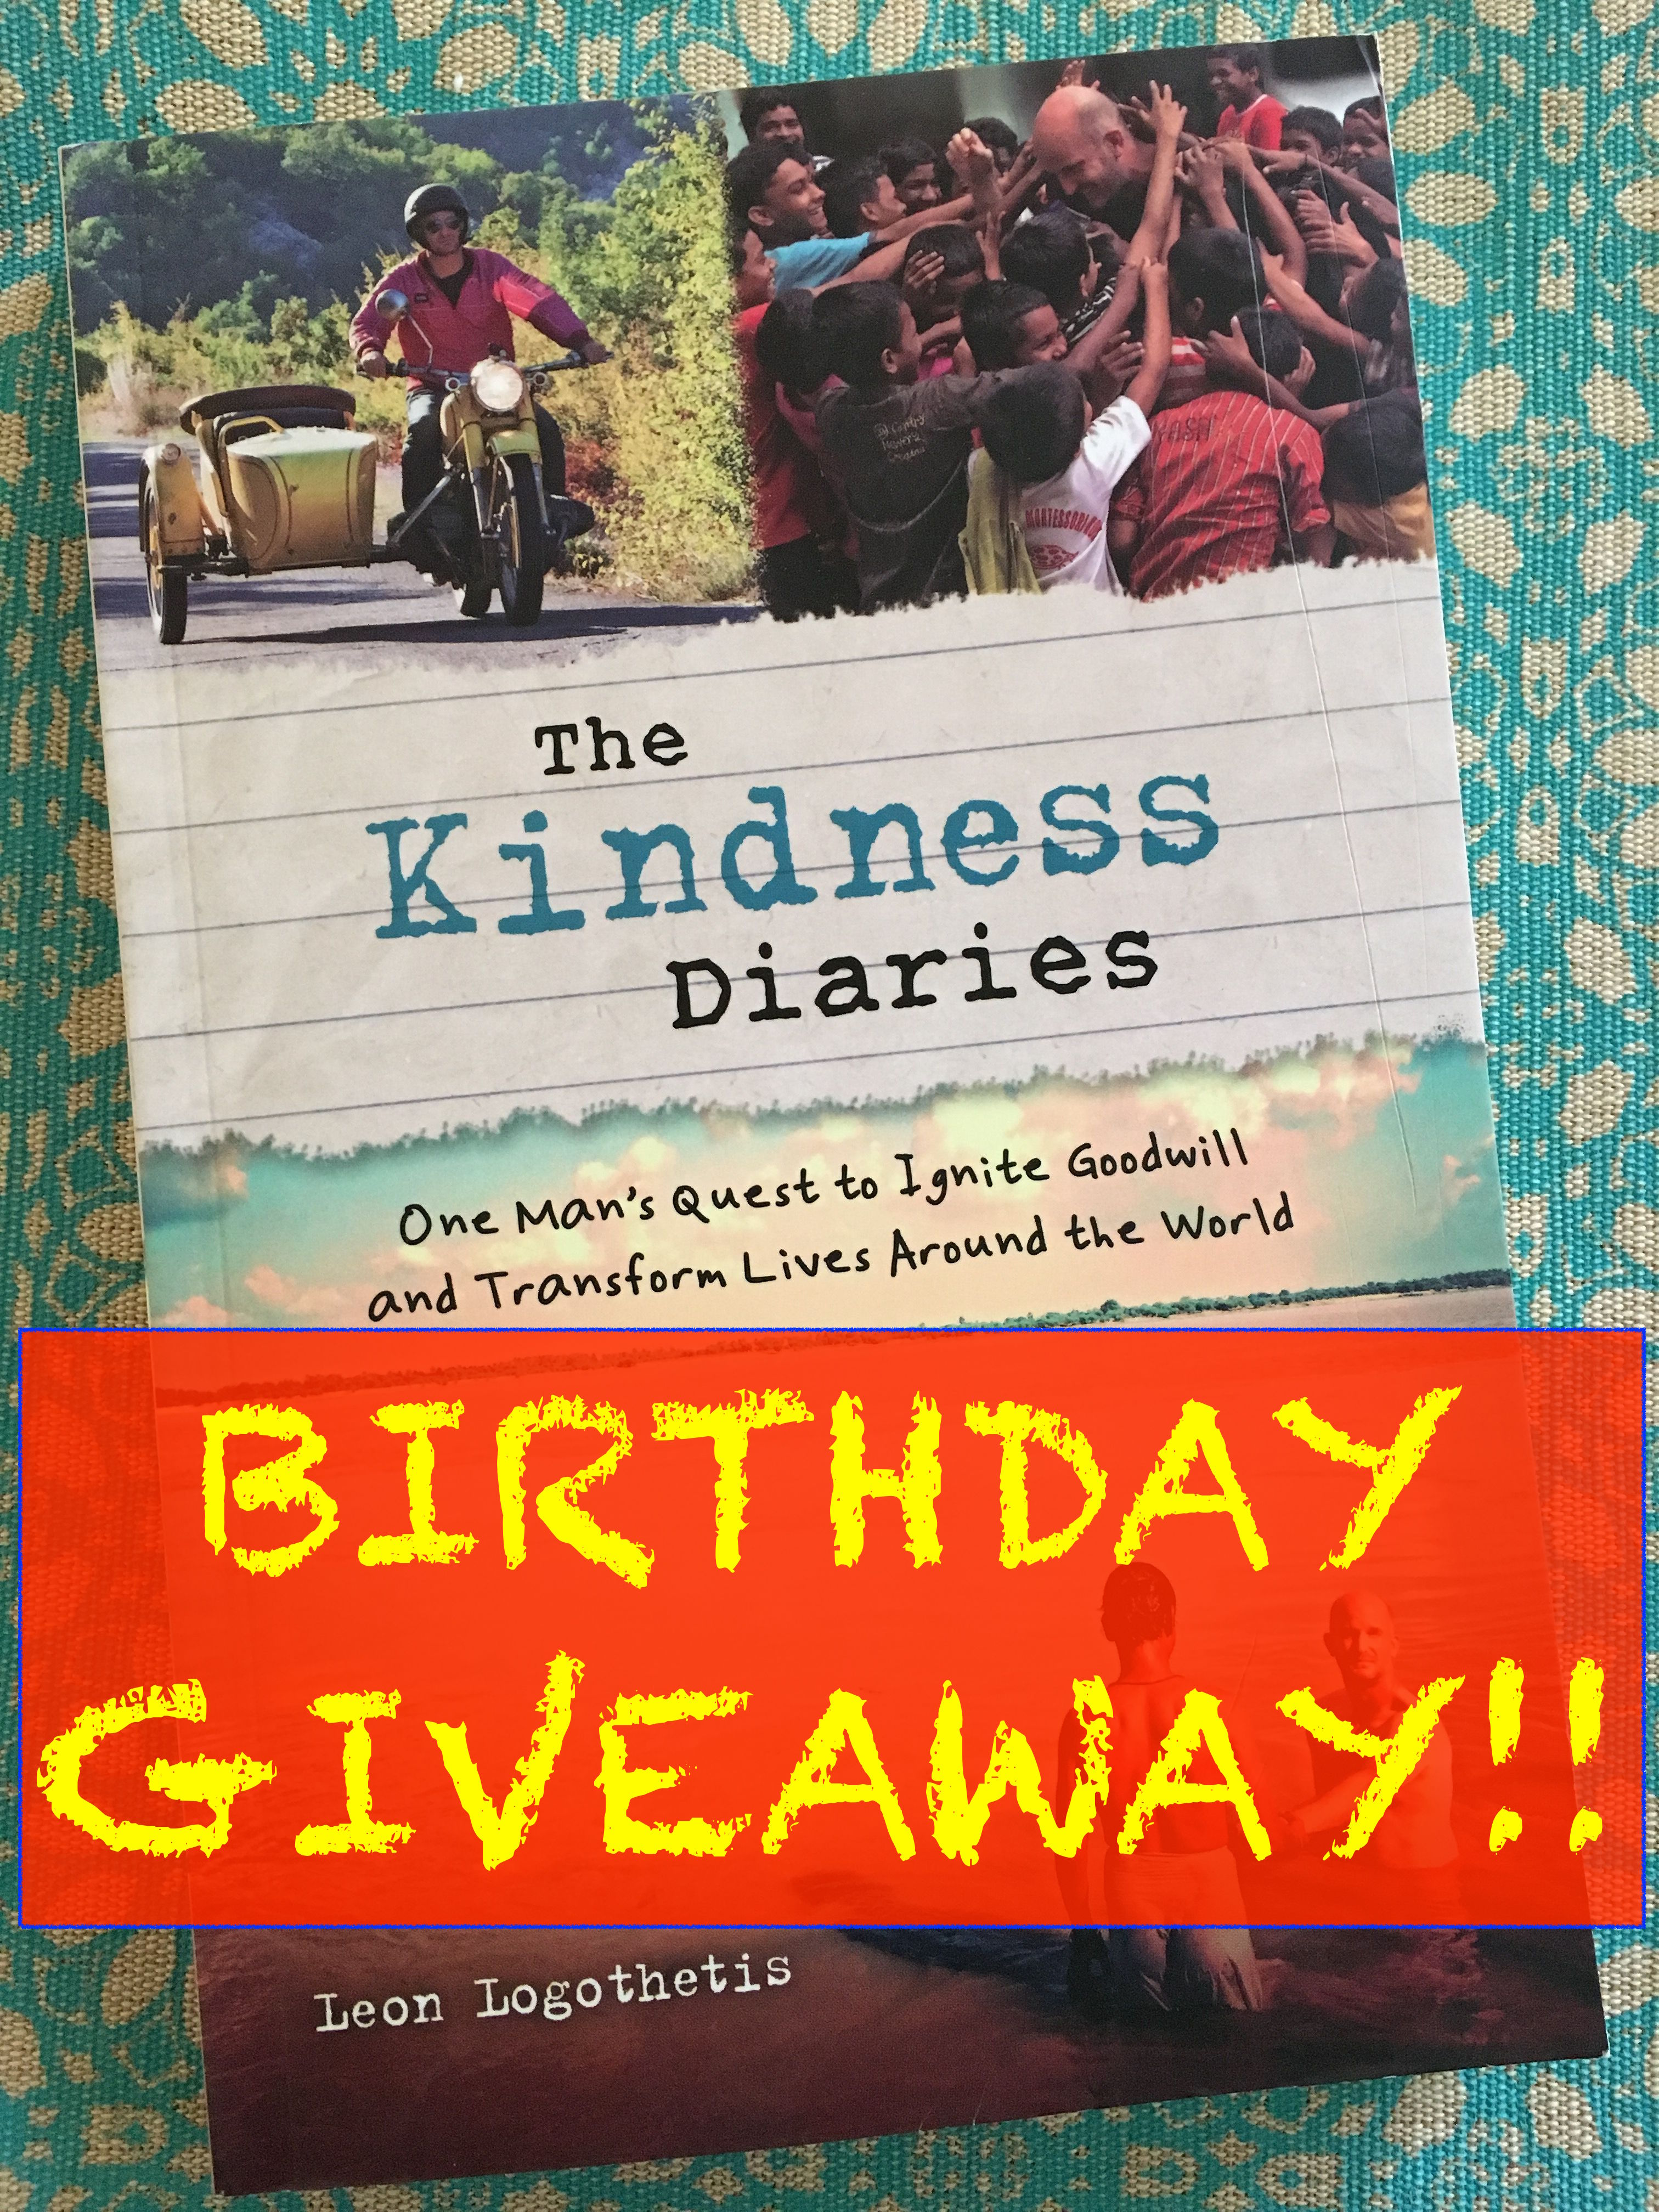 29th Kindness Diaries Bday Giveaway